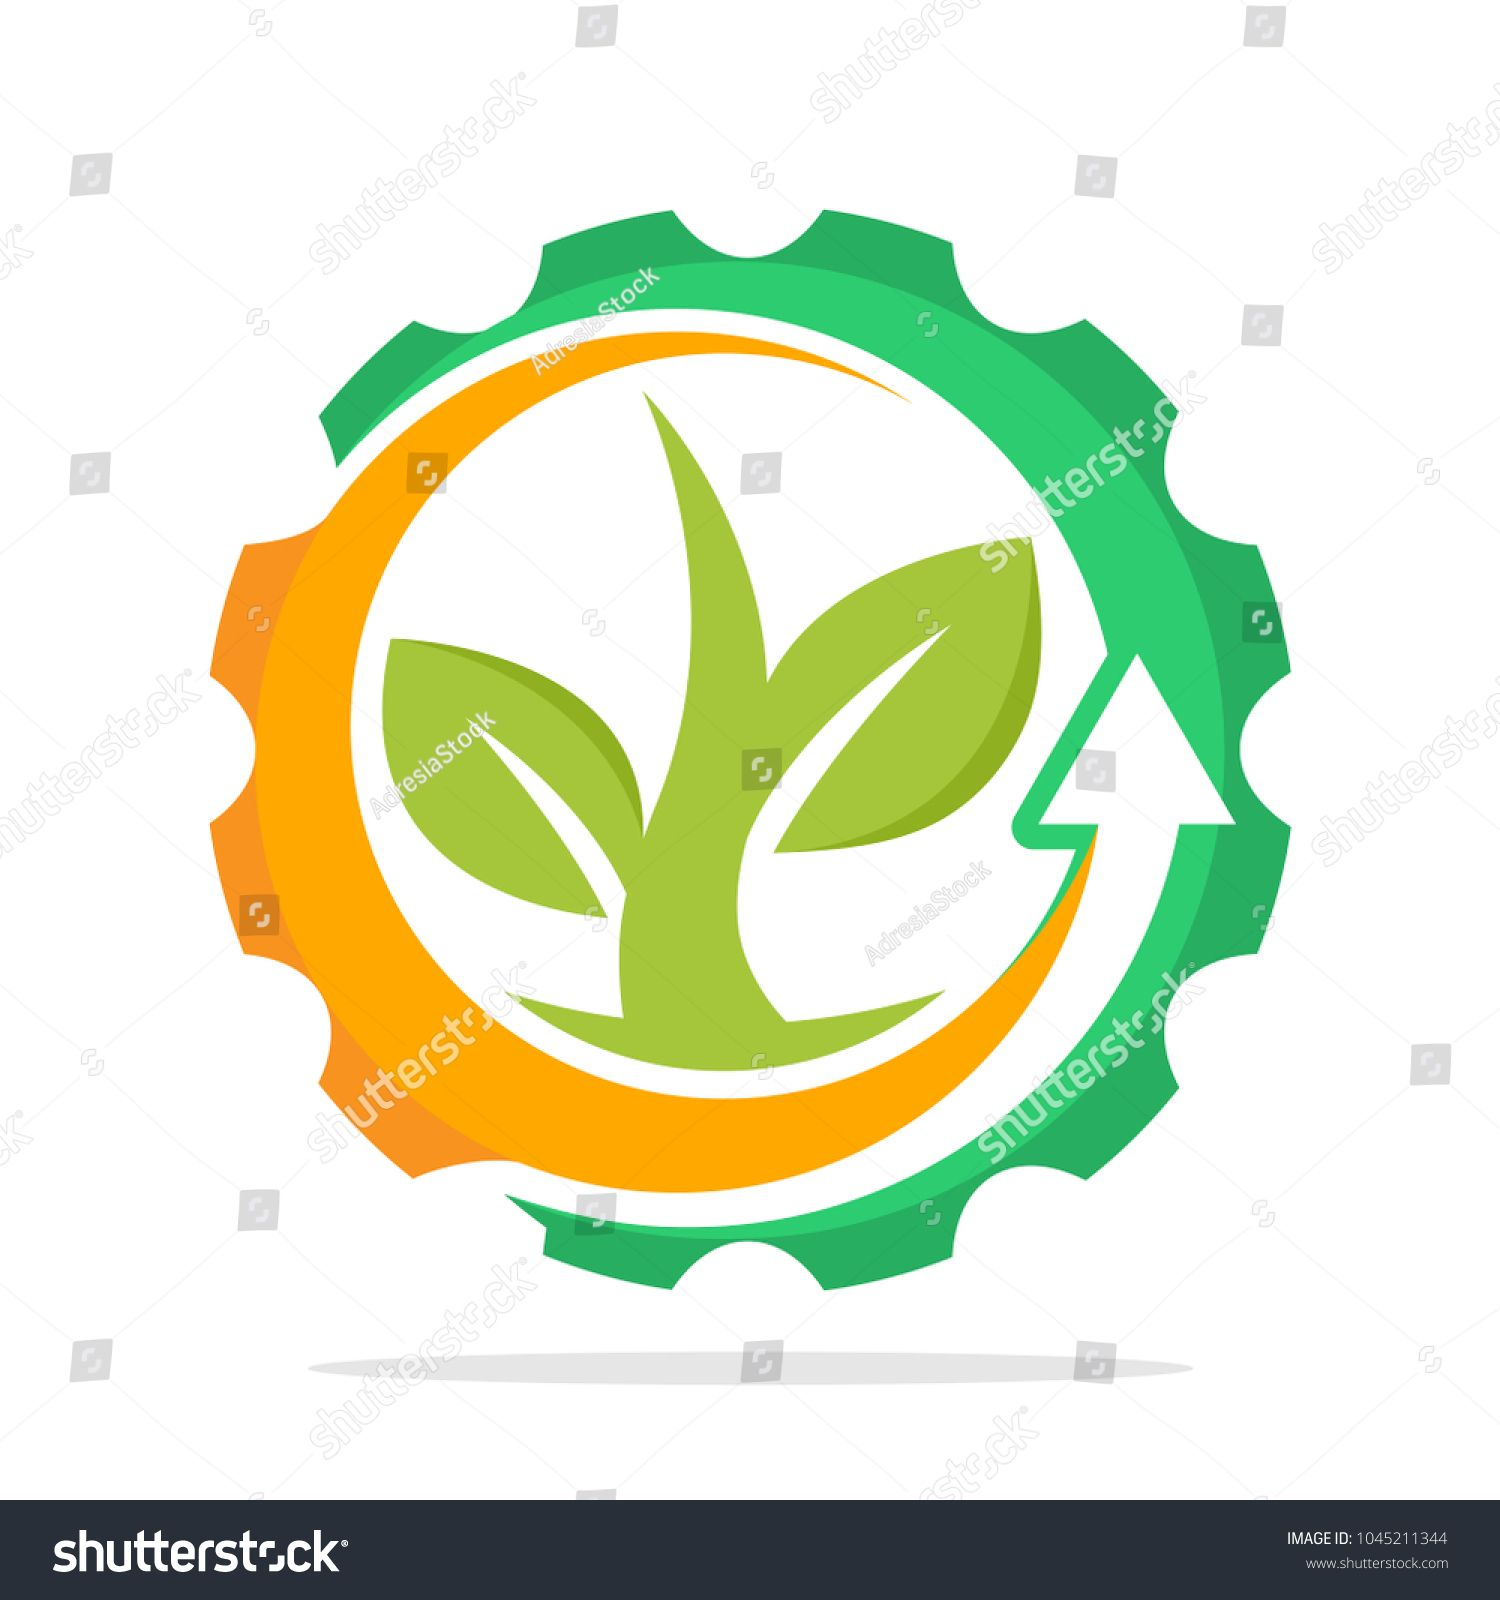 Iconic Logo With The Concept Of Environmentally Friendly Industry Eco Friendly Green Technology Sponsored Ad C Logo Concept Web Design Tutorials Concept